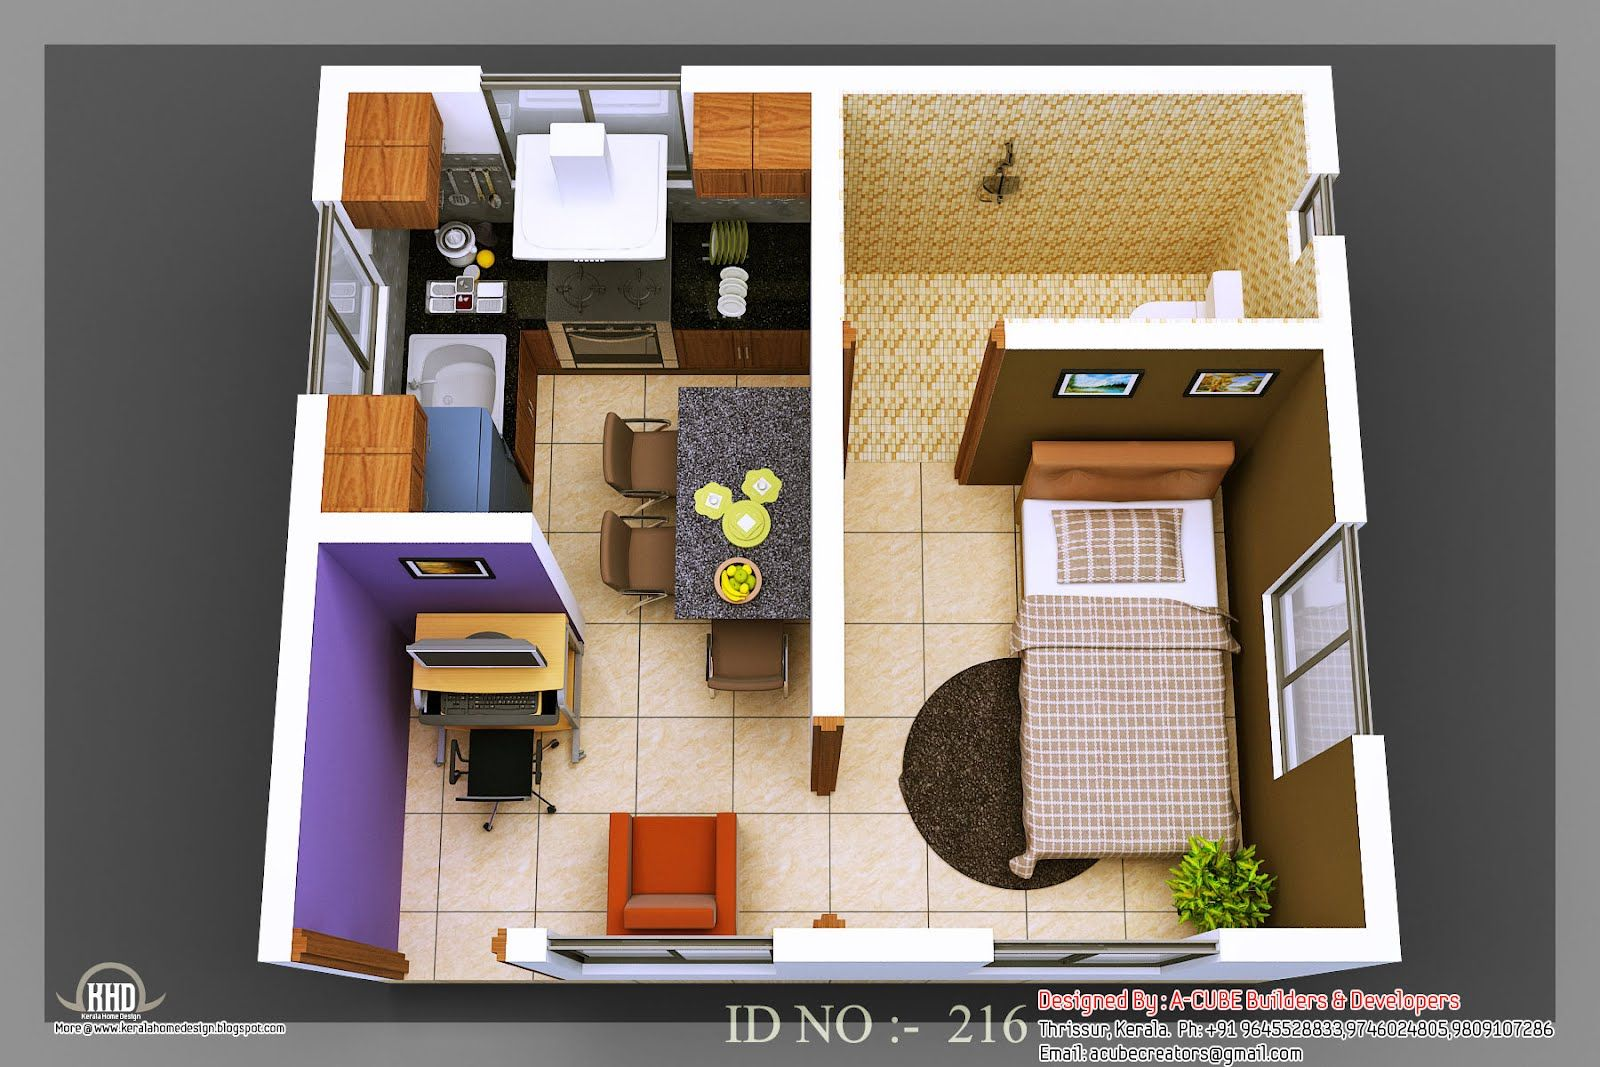 isometric views small house plans kerala home design floor information isometric small house plans - Small Houses Plans